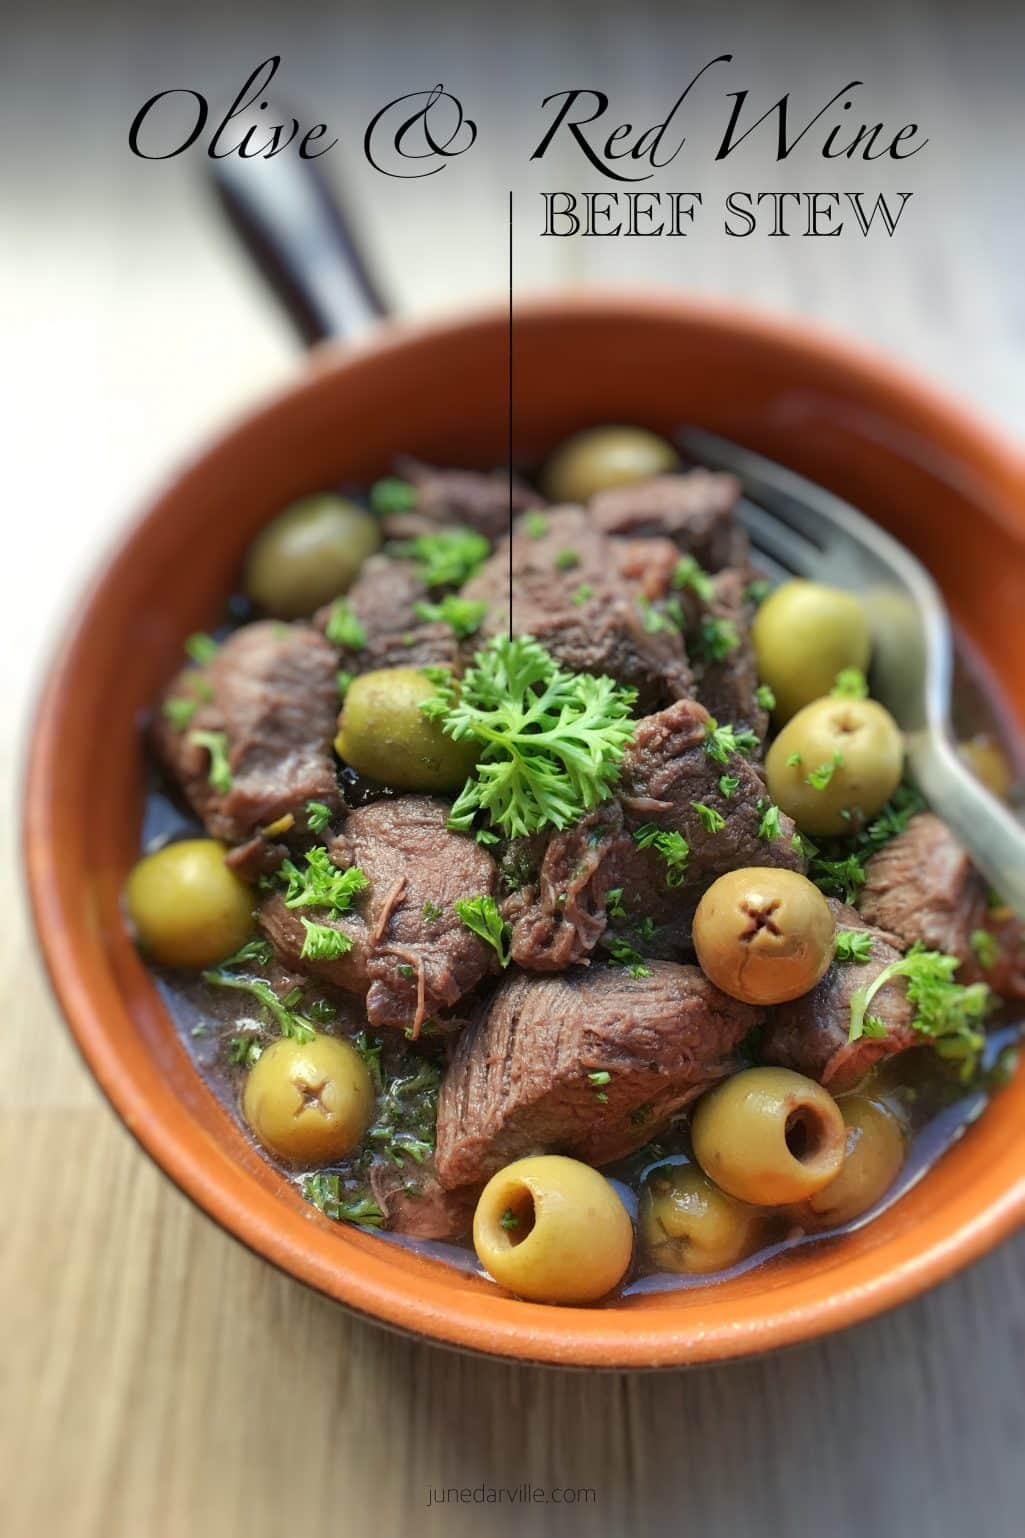 Recipe For Beef Stew with Olives